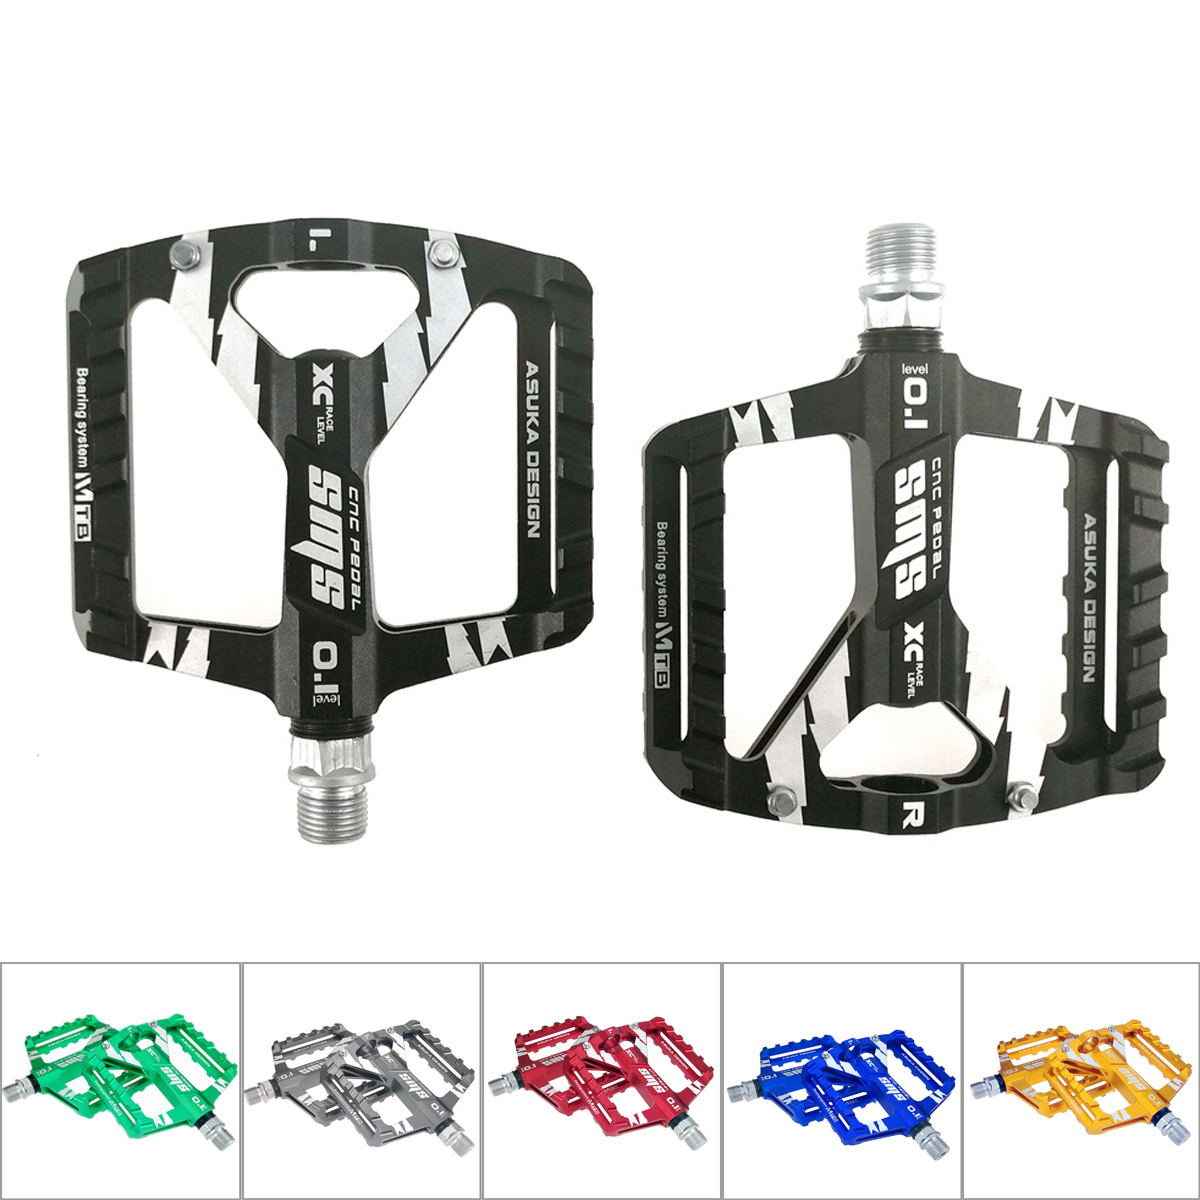 Mountain Bike Pedals Cycling Road MTB Pedals Flat Platform Plastic Bicycle Parts